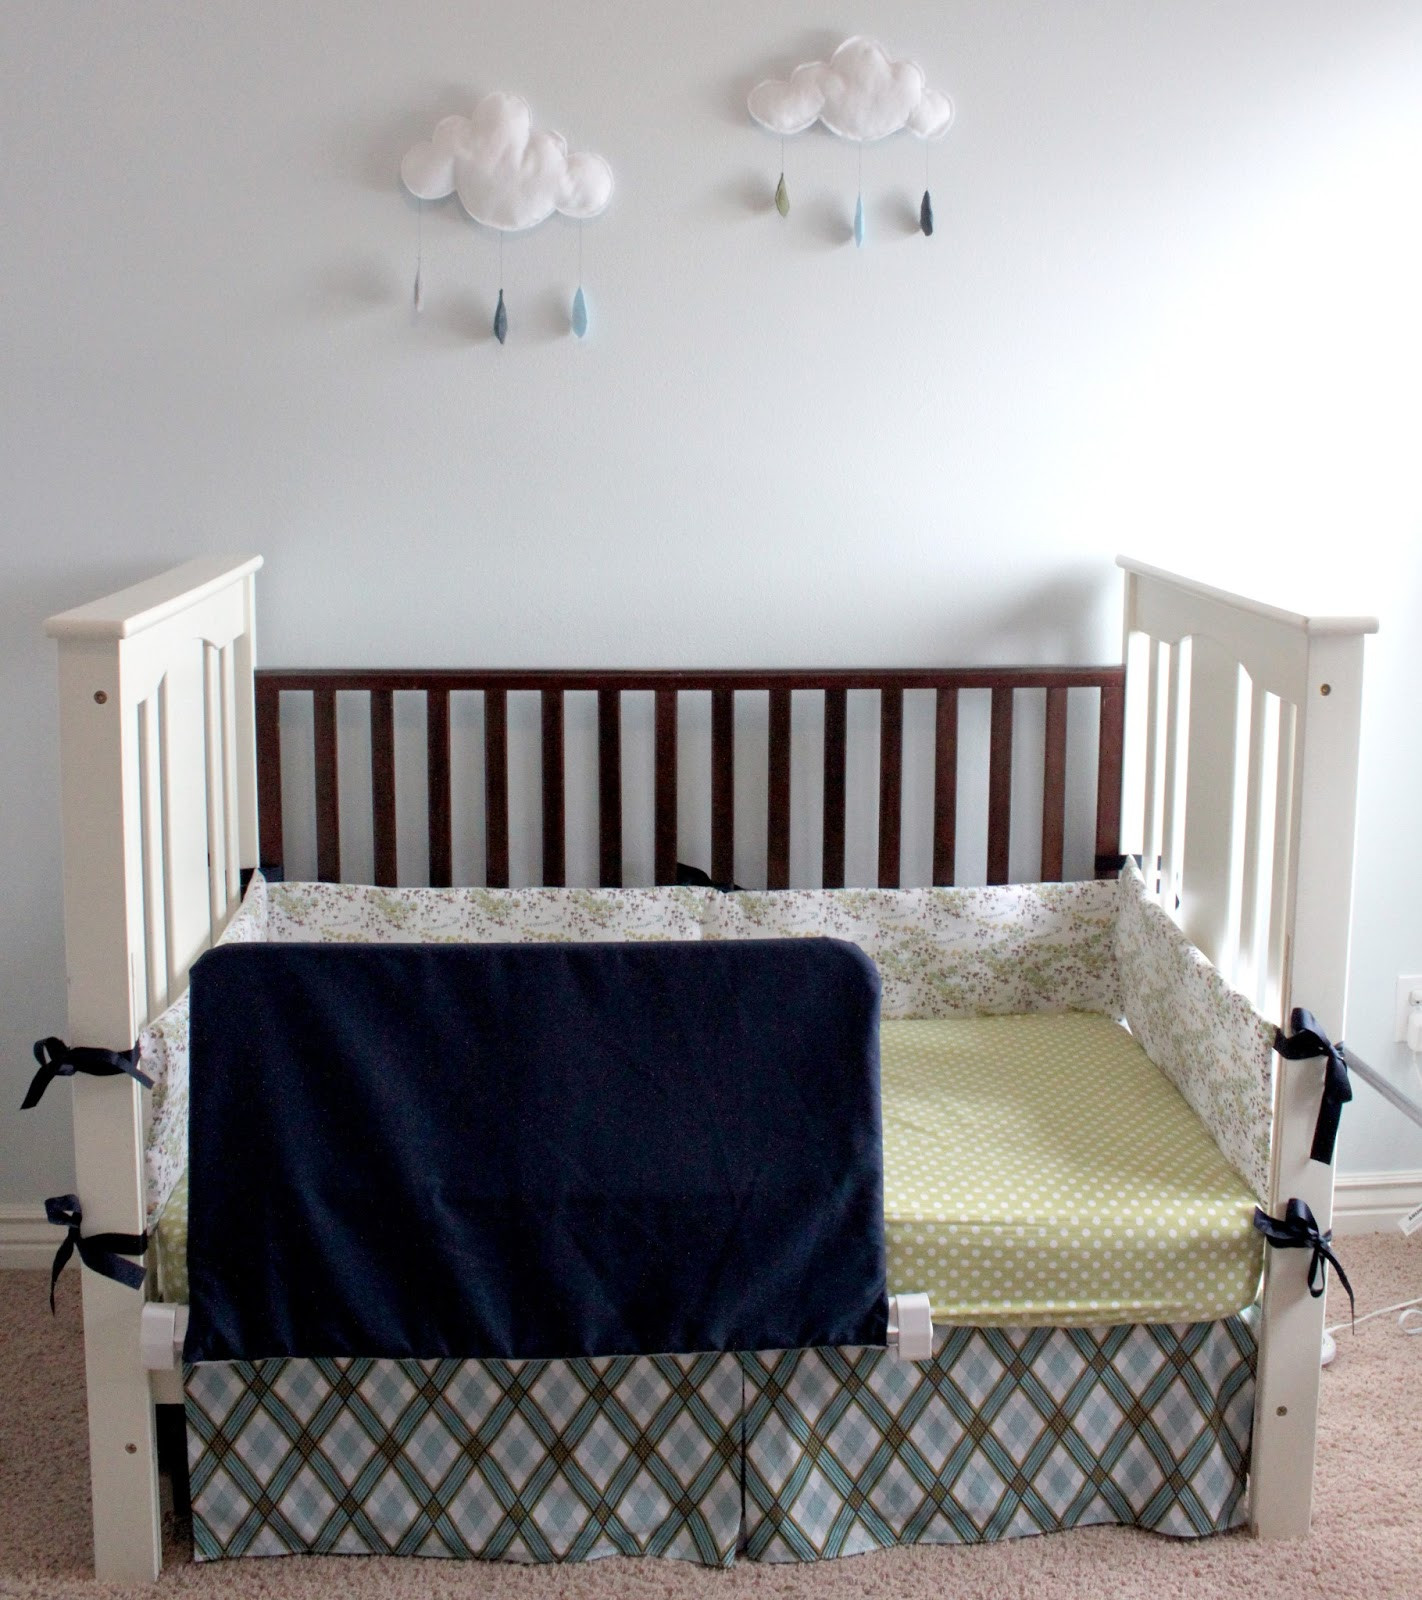 Best ideas about DIY Bed Rails . Save or Pin creatively christy Improvising DIY Bed Rail Cover Now.